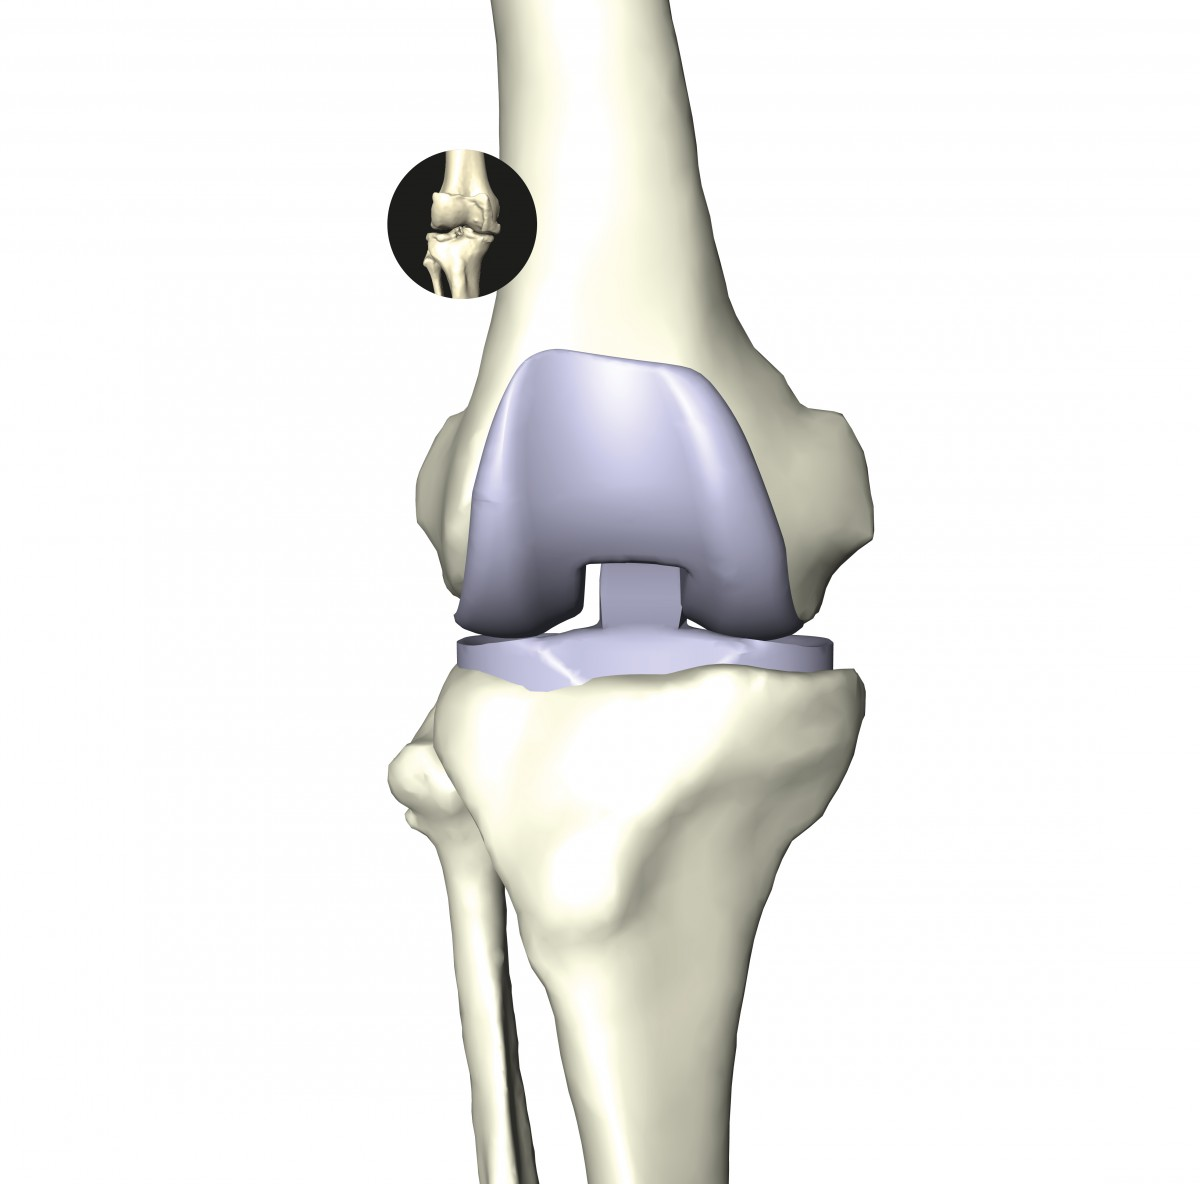 Individual anatomy reconstruction of the knee bones allows 3D planning of implant positioning. Mechanical simulations taking cartilage, patella, tendons, and ligaments into account improve the understanding of degenerative diseases and the functionally appropriate positioning of implants.